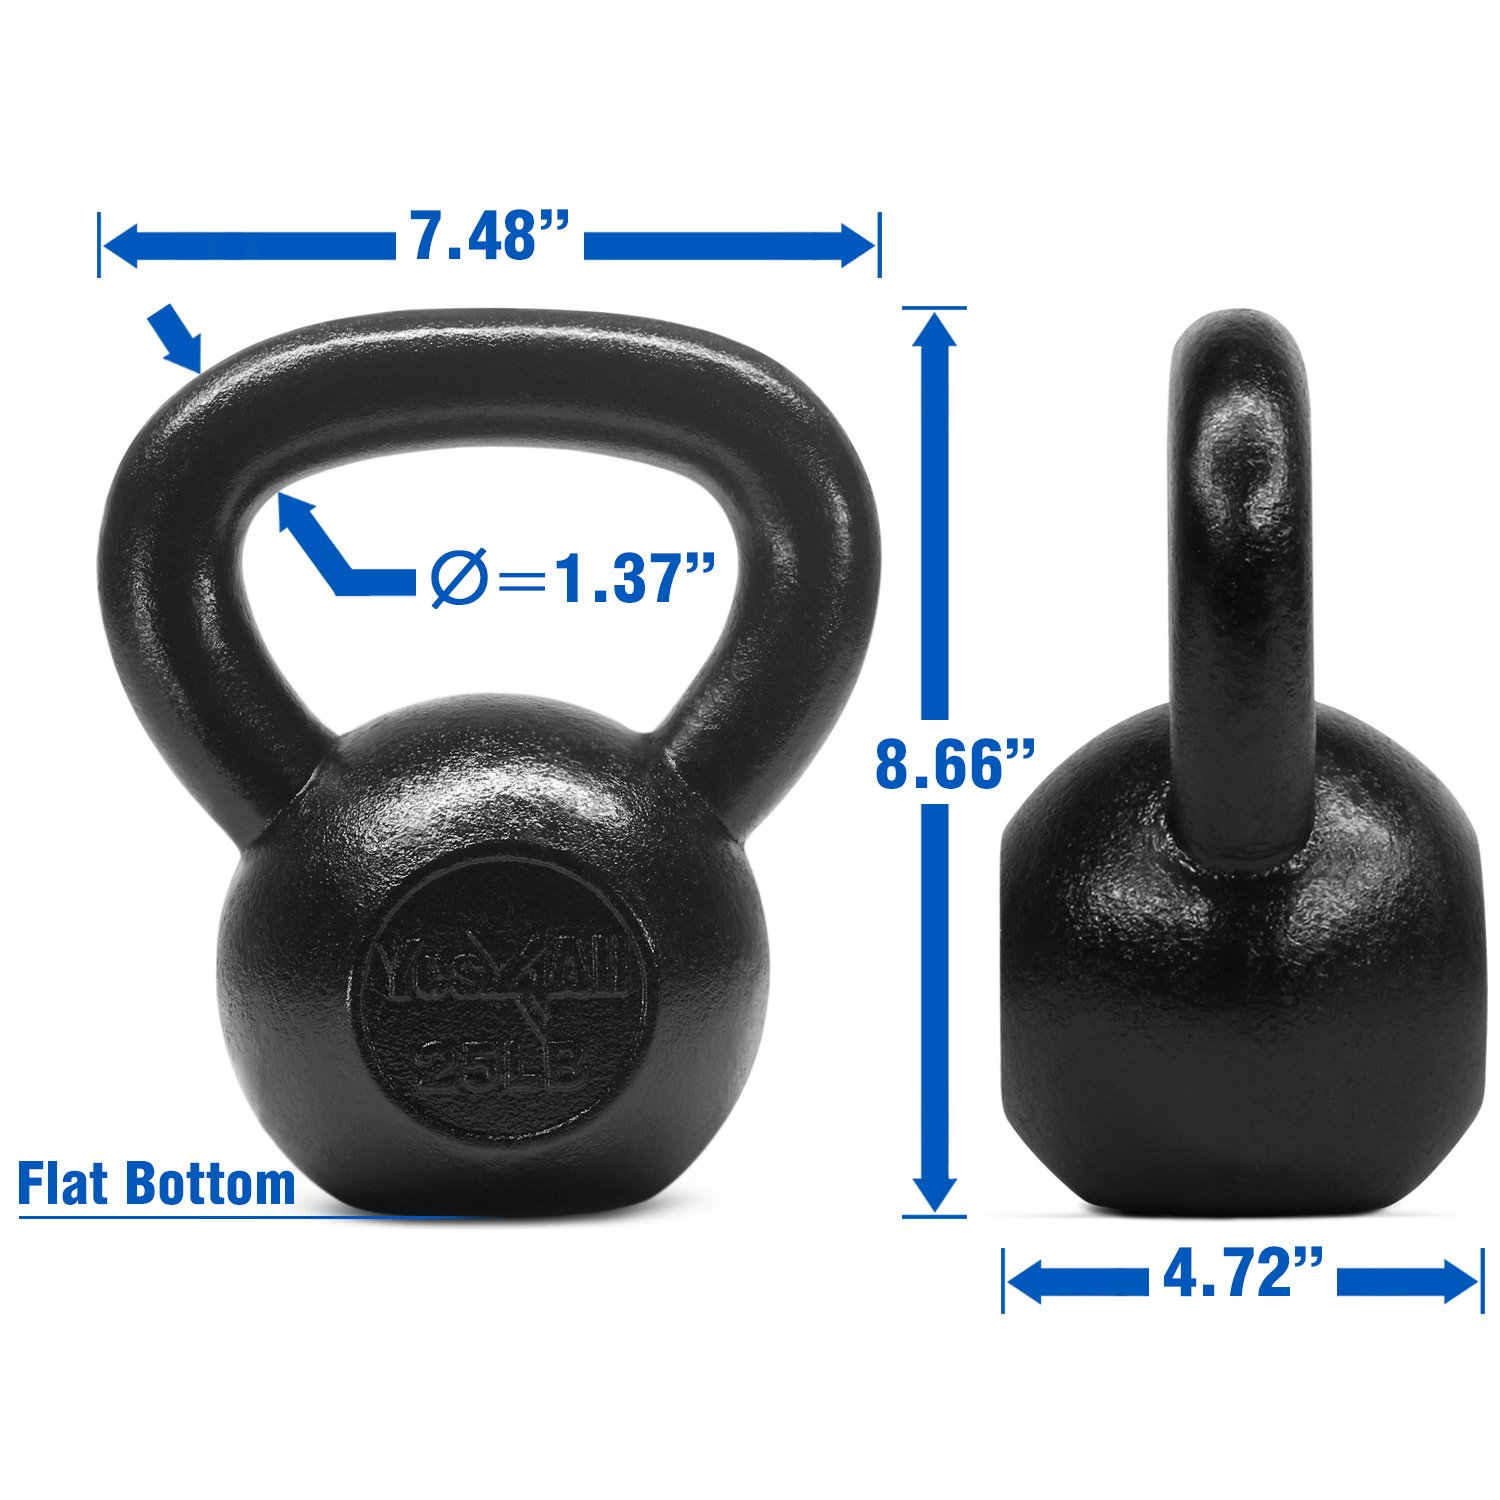 Yes4All Solid Cast Iron Kettlebell Weights Set – Great for Full Body Workout and Strength Training – Kettlebell 25 lbs (Black) by Yes4All (Image #3)